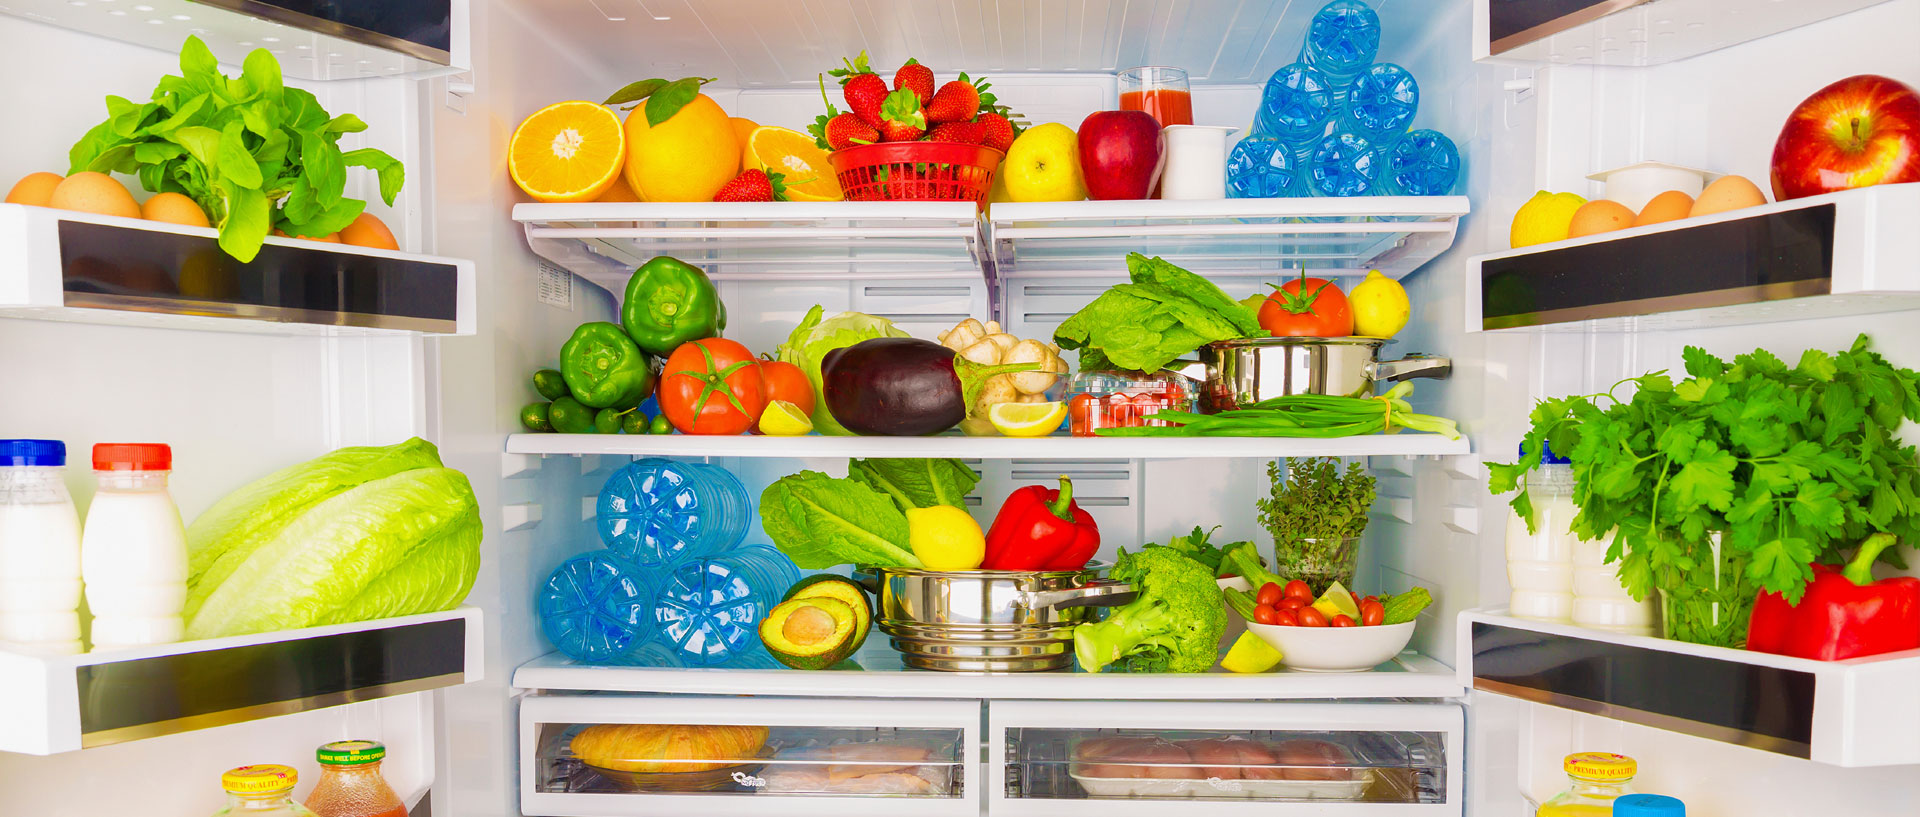 French door or side by side -  Helped Make French Door Bottom Freezers The Most Popular Refrigerator Configuration But If You Re Making The Switch From A Top Freezer Or Side By Side